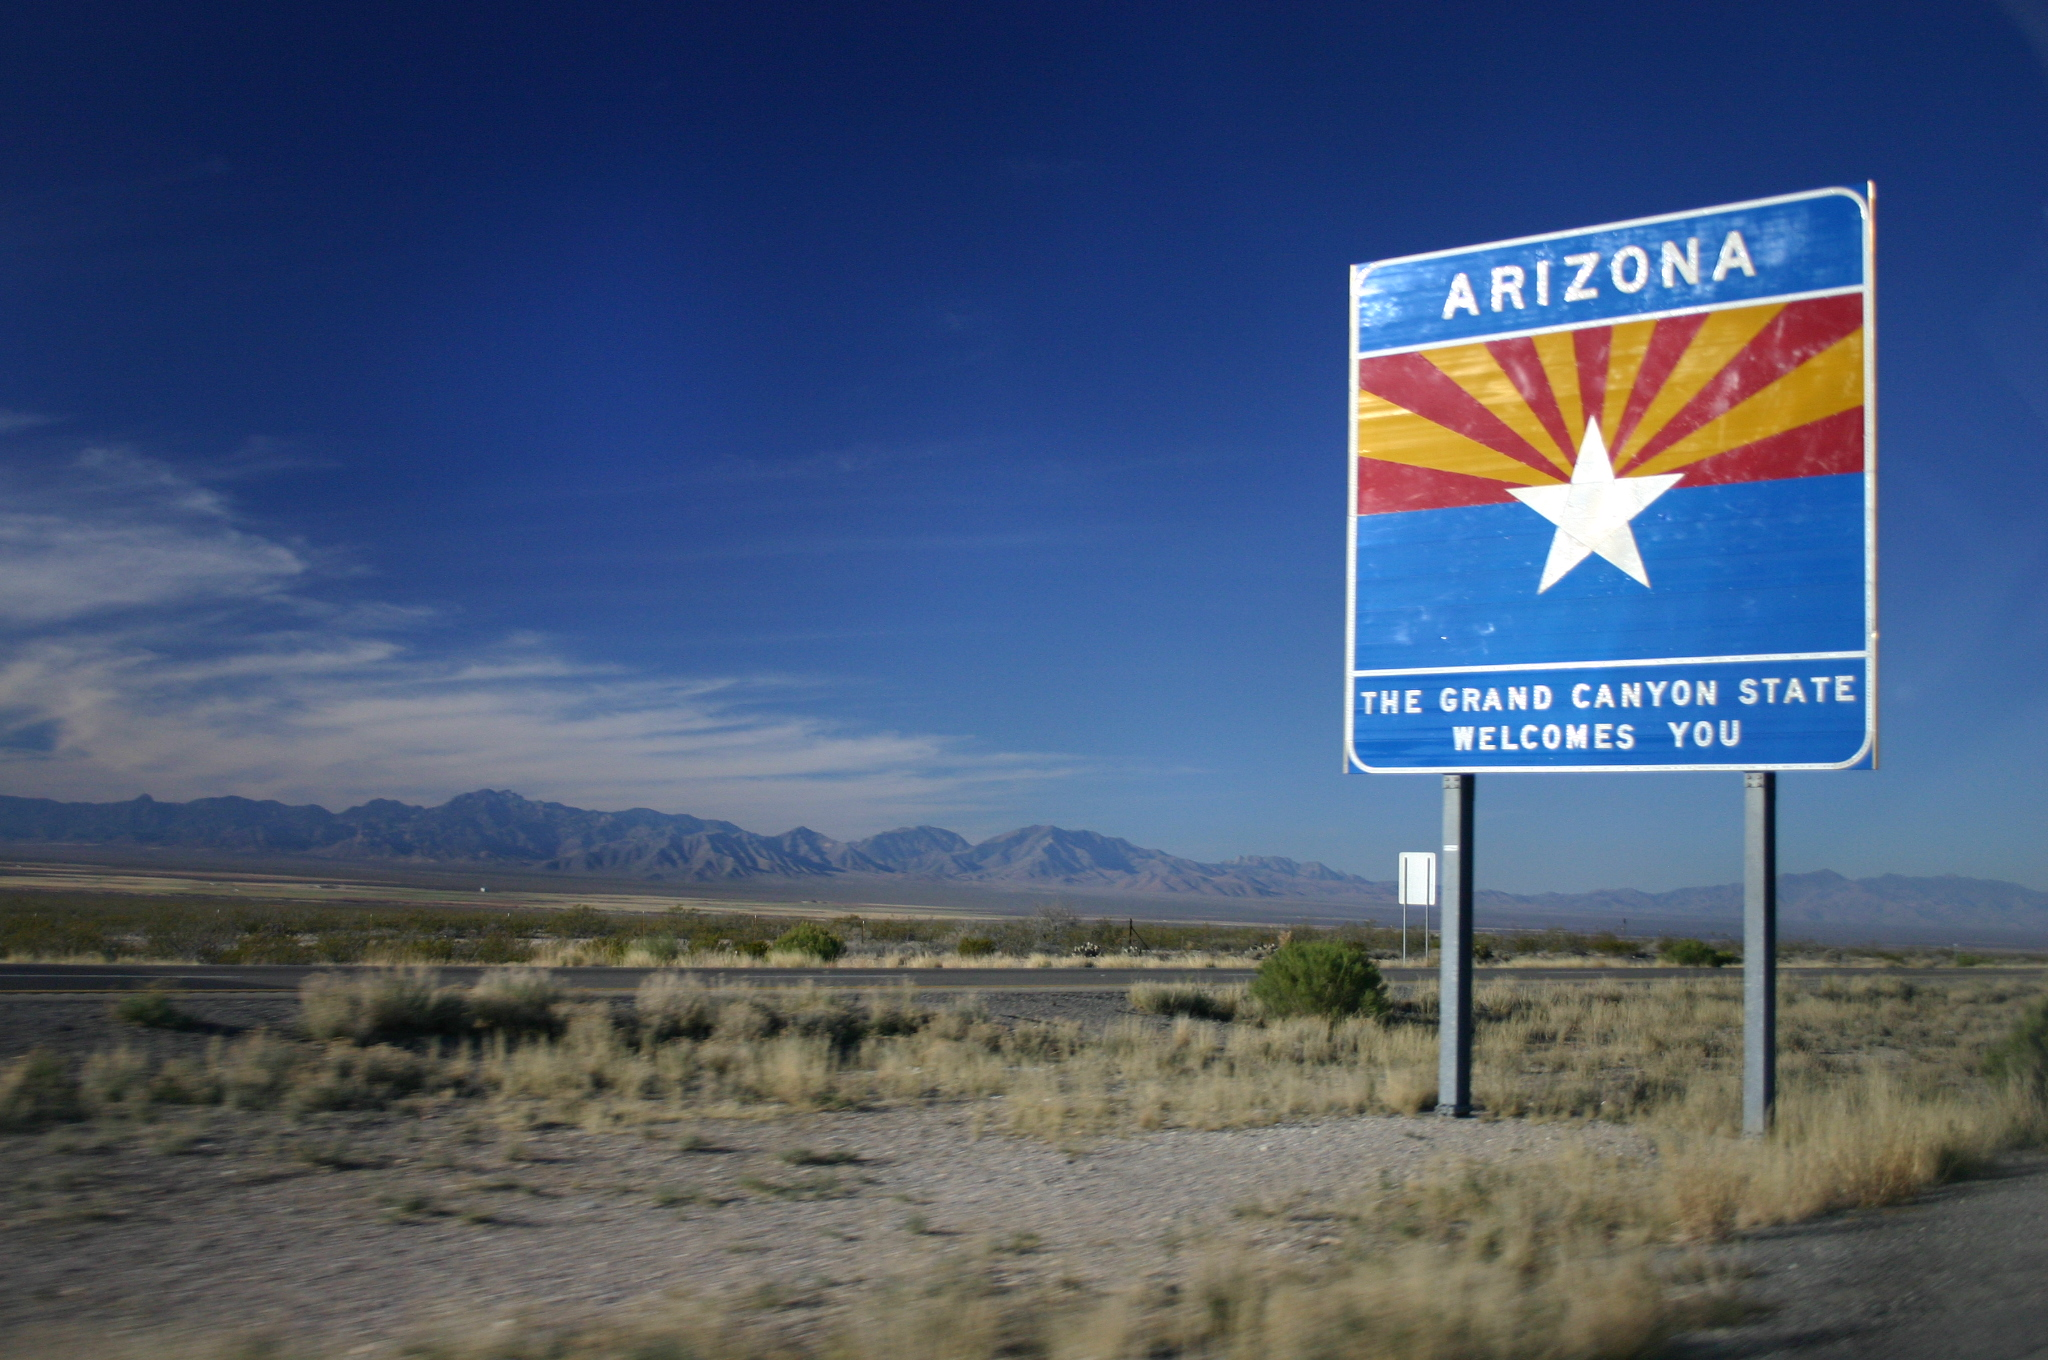 Entering the State of Arizona in Interstate 10 Westbound.